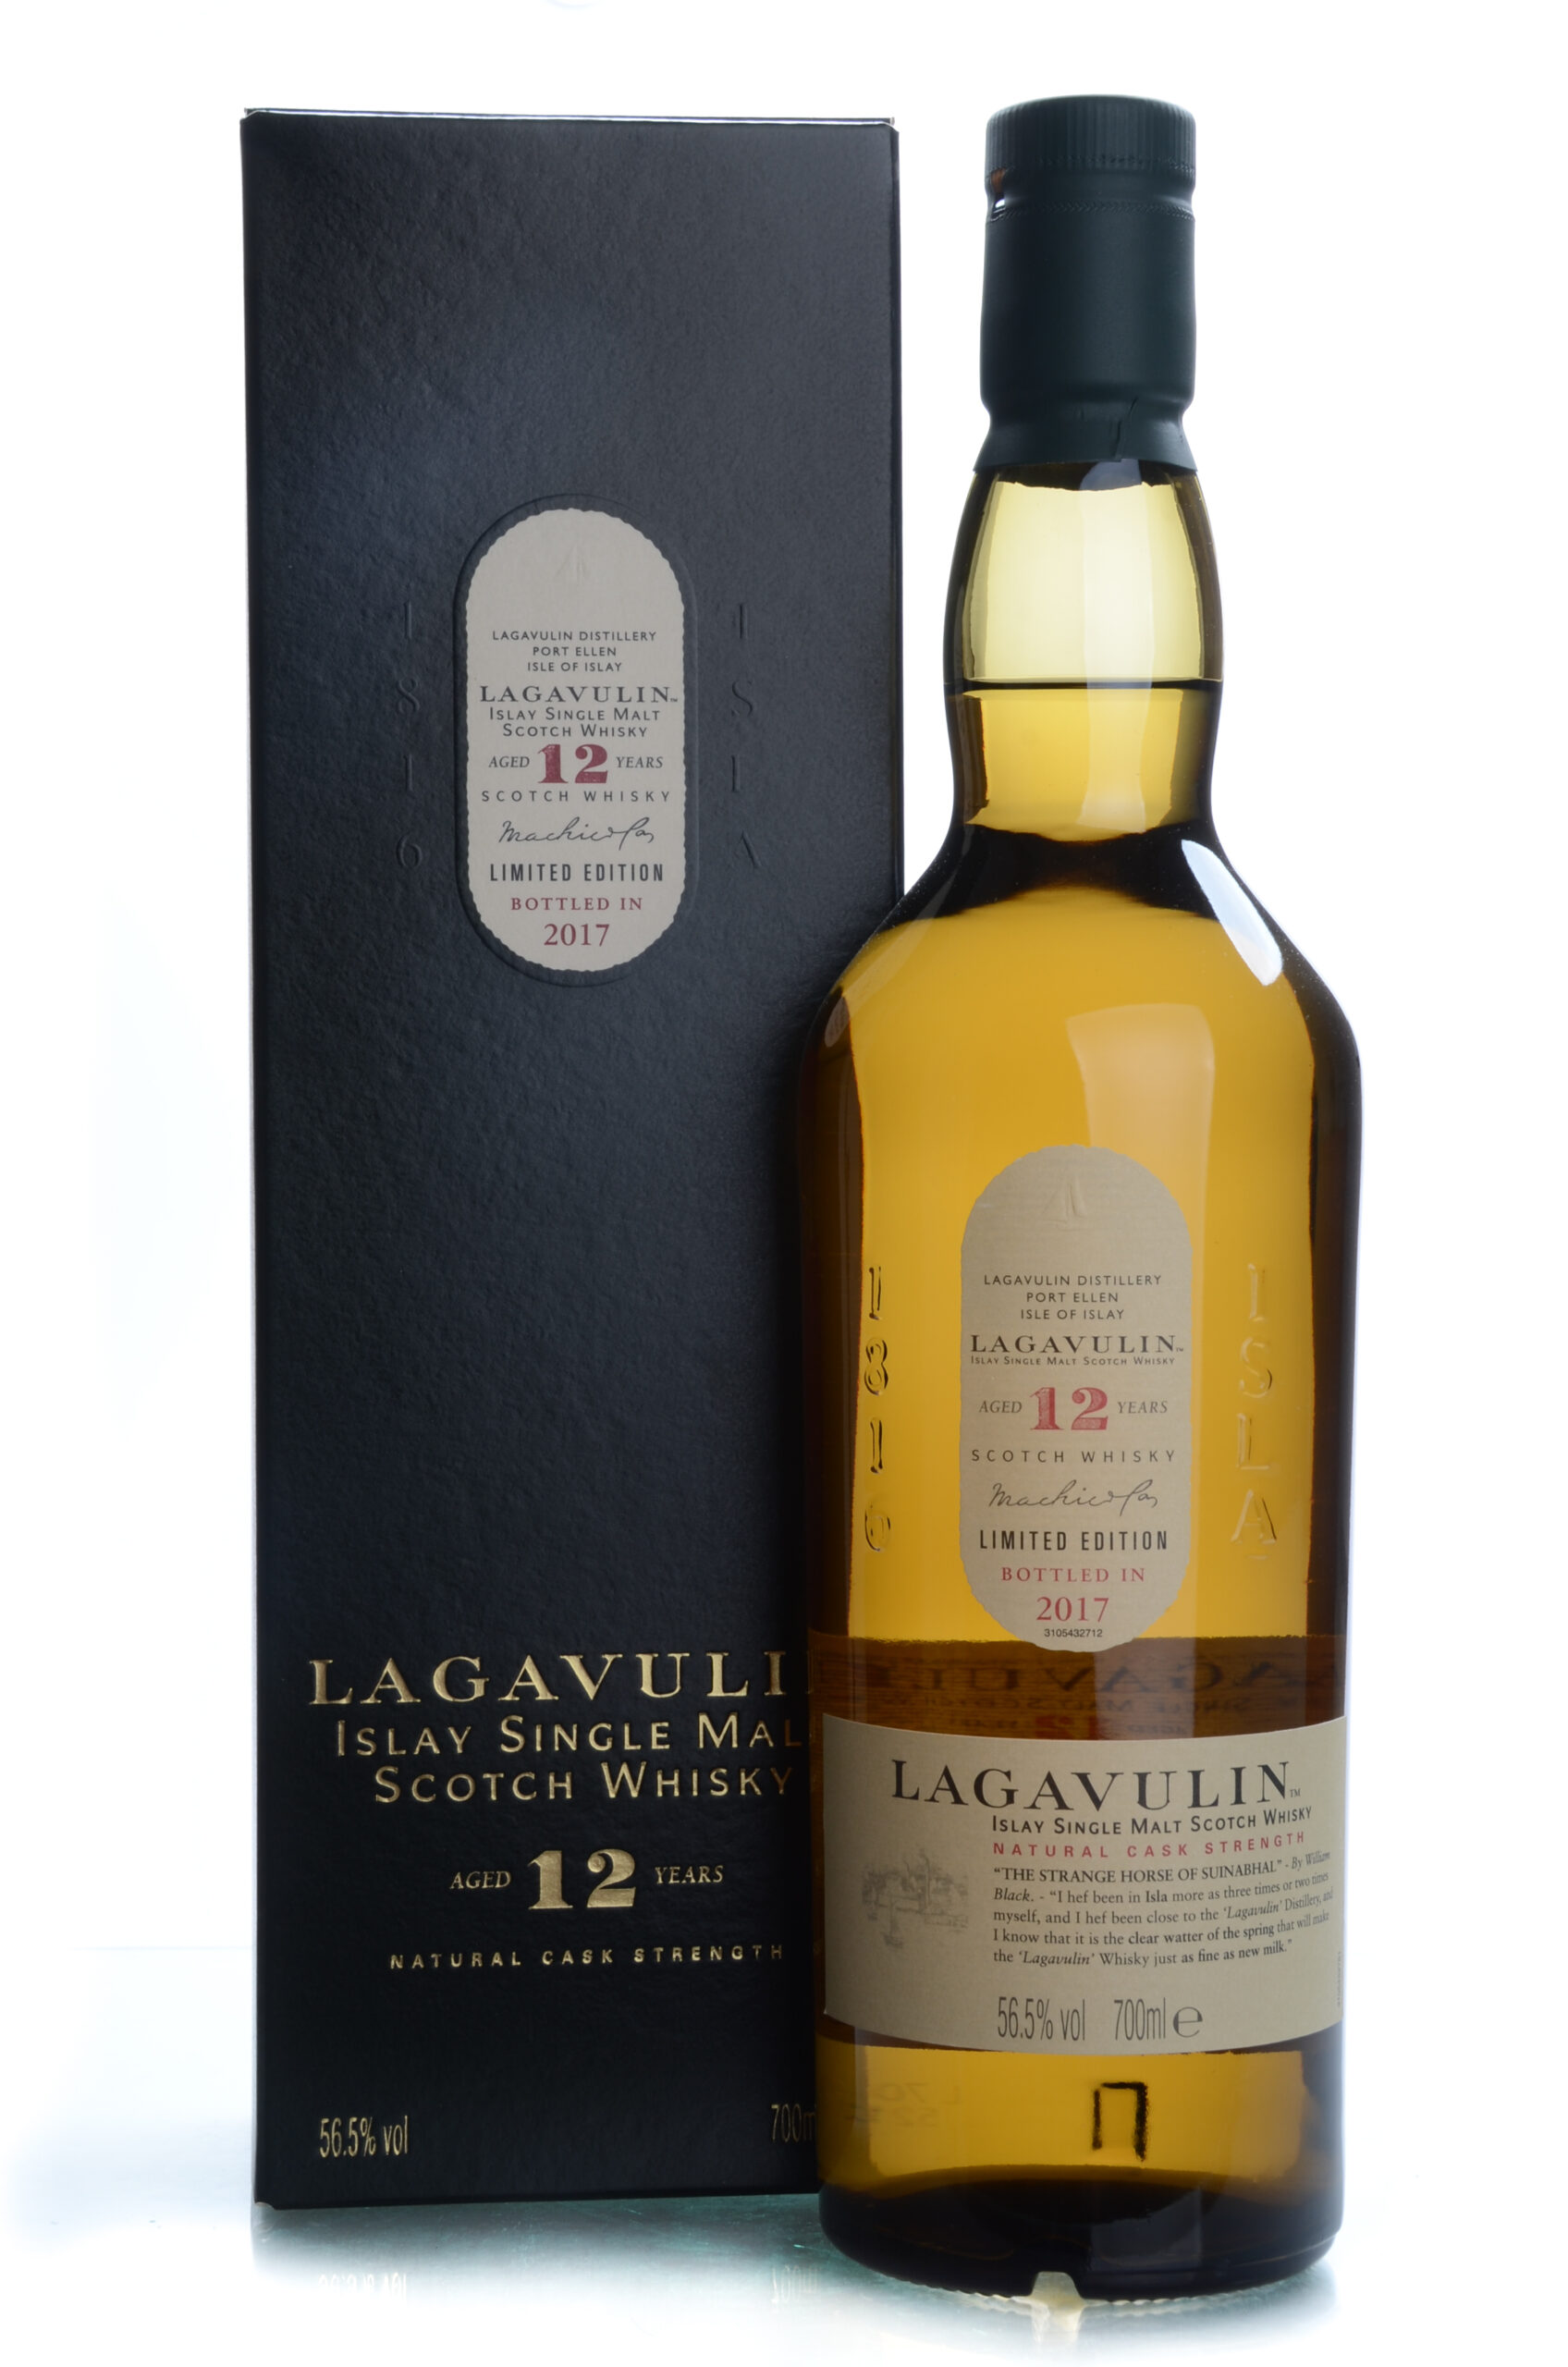 Lagavulin 12 years limited edition 2017